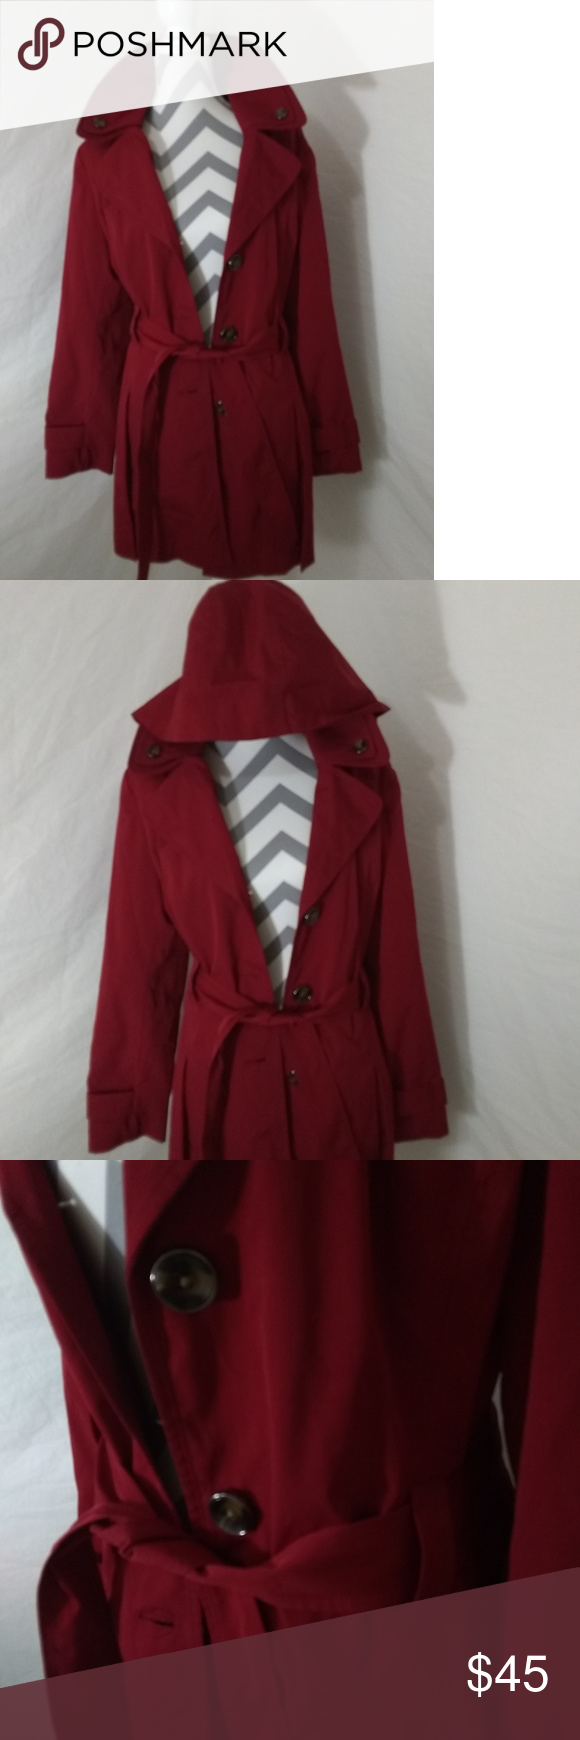 Red Liz Claiborne Coat This Is A Very Nice Red Coat Has A Detachable Hood Size Large In Excellent Condition Mid Thigh Len Fashion Clothes Design Fashion Design [ 1740 x 580 Pixel ]